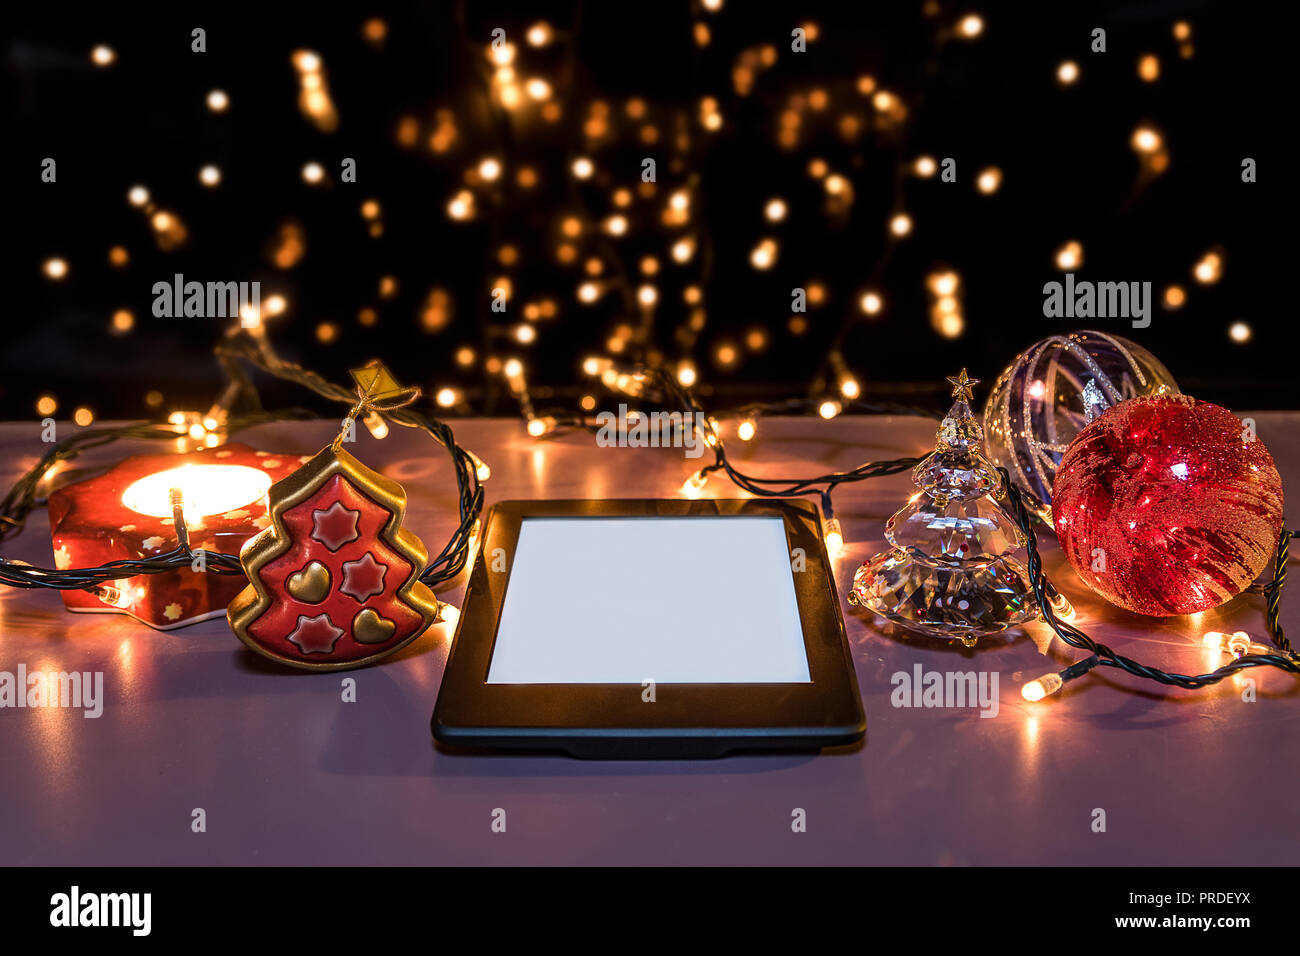 E reader on flat surface, perspective view, christmas theme - Stock Image